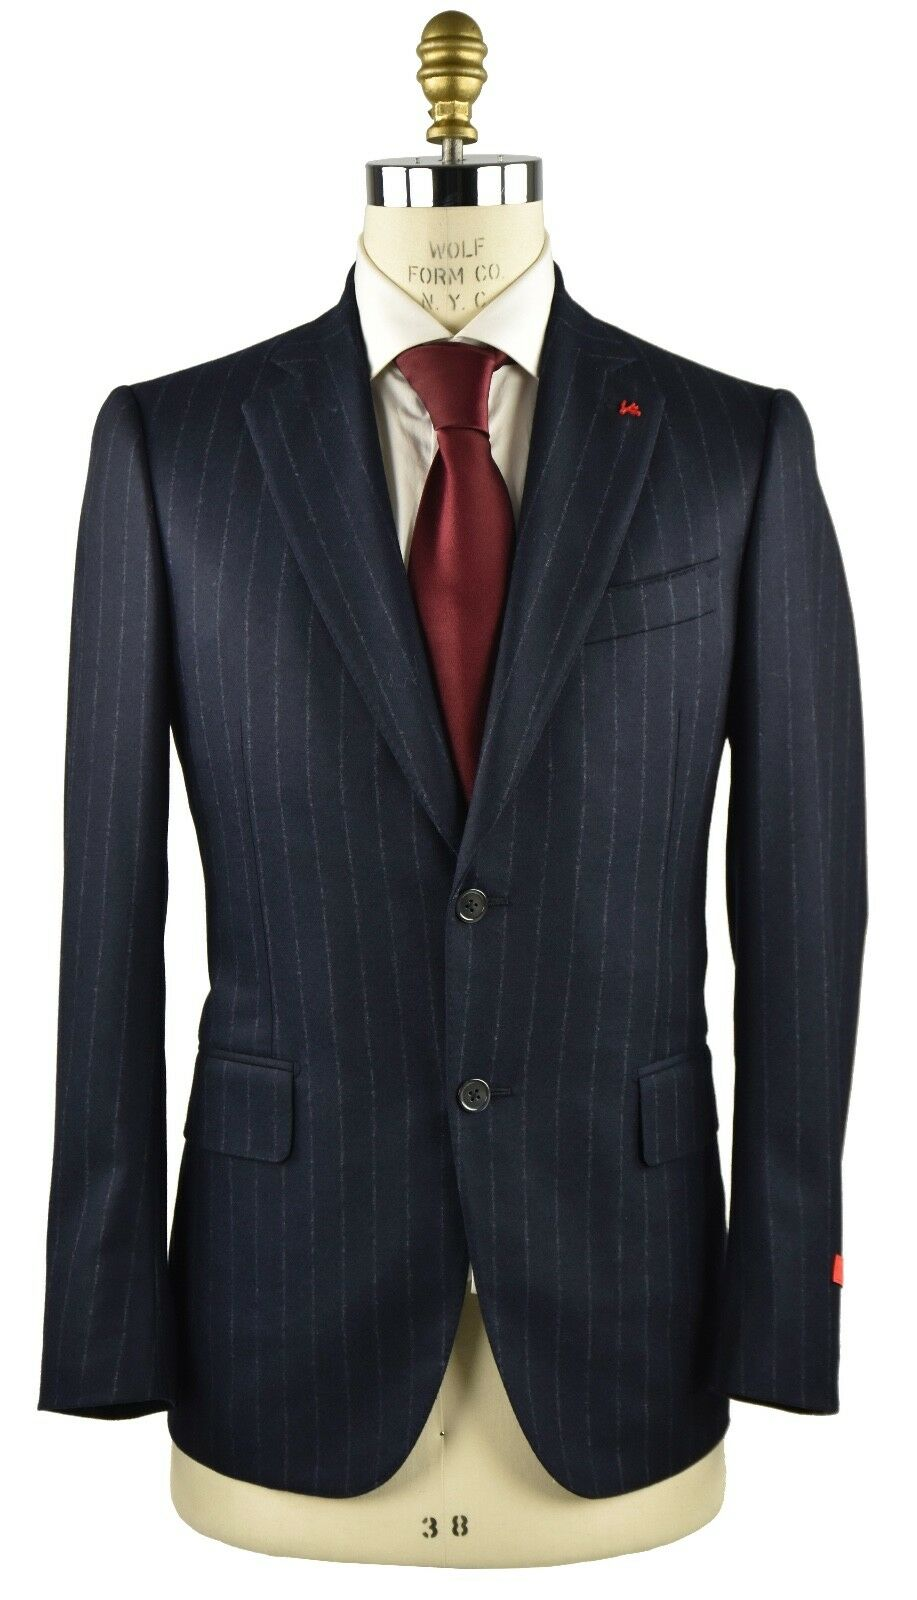 NEW 2018 ISAIA NAPOLI SUITS  100% WOOL  SZ 42 US 52 EU 8R  18IVW6